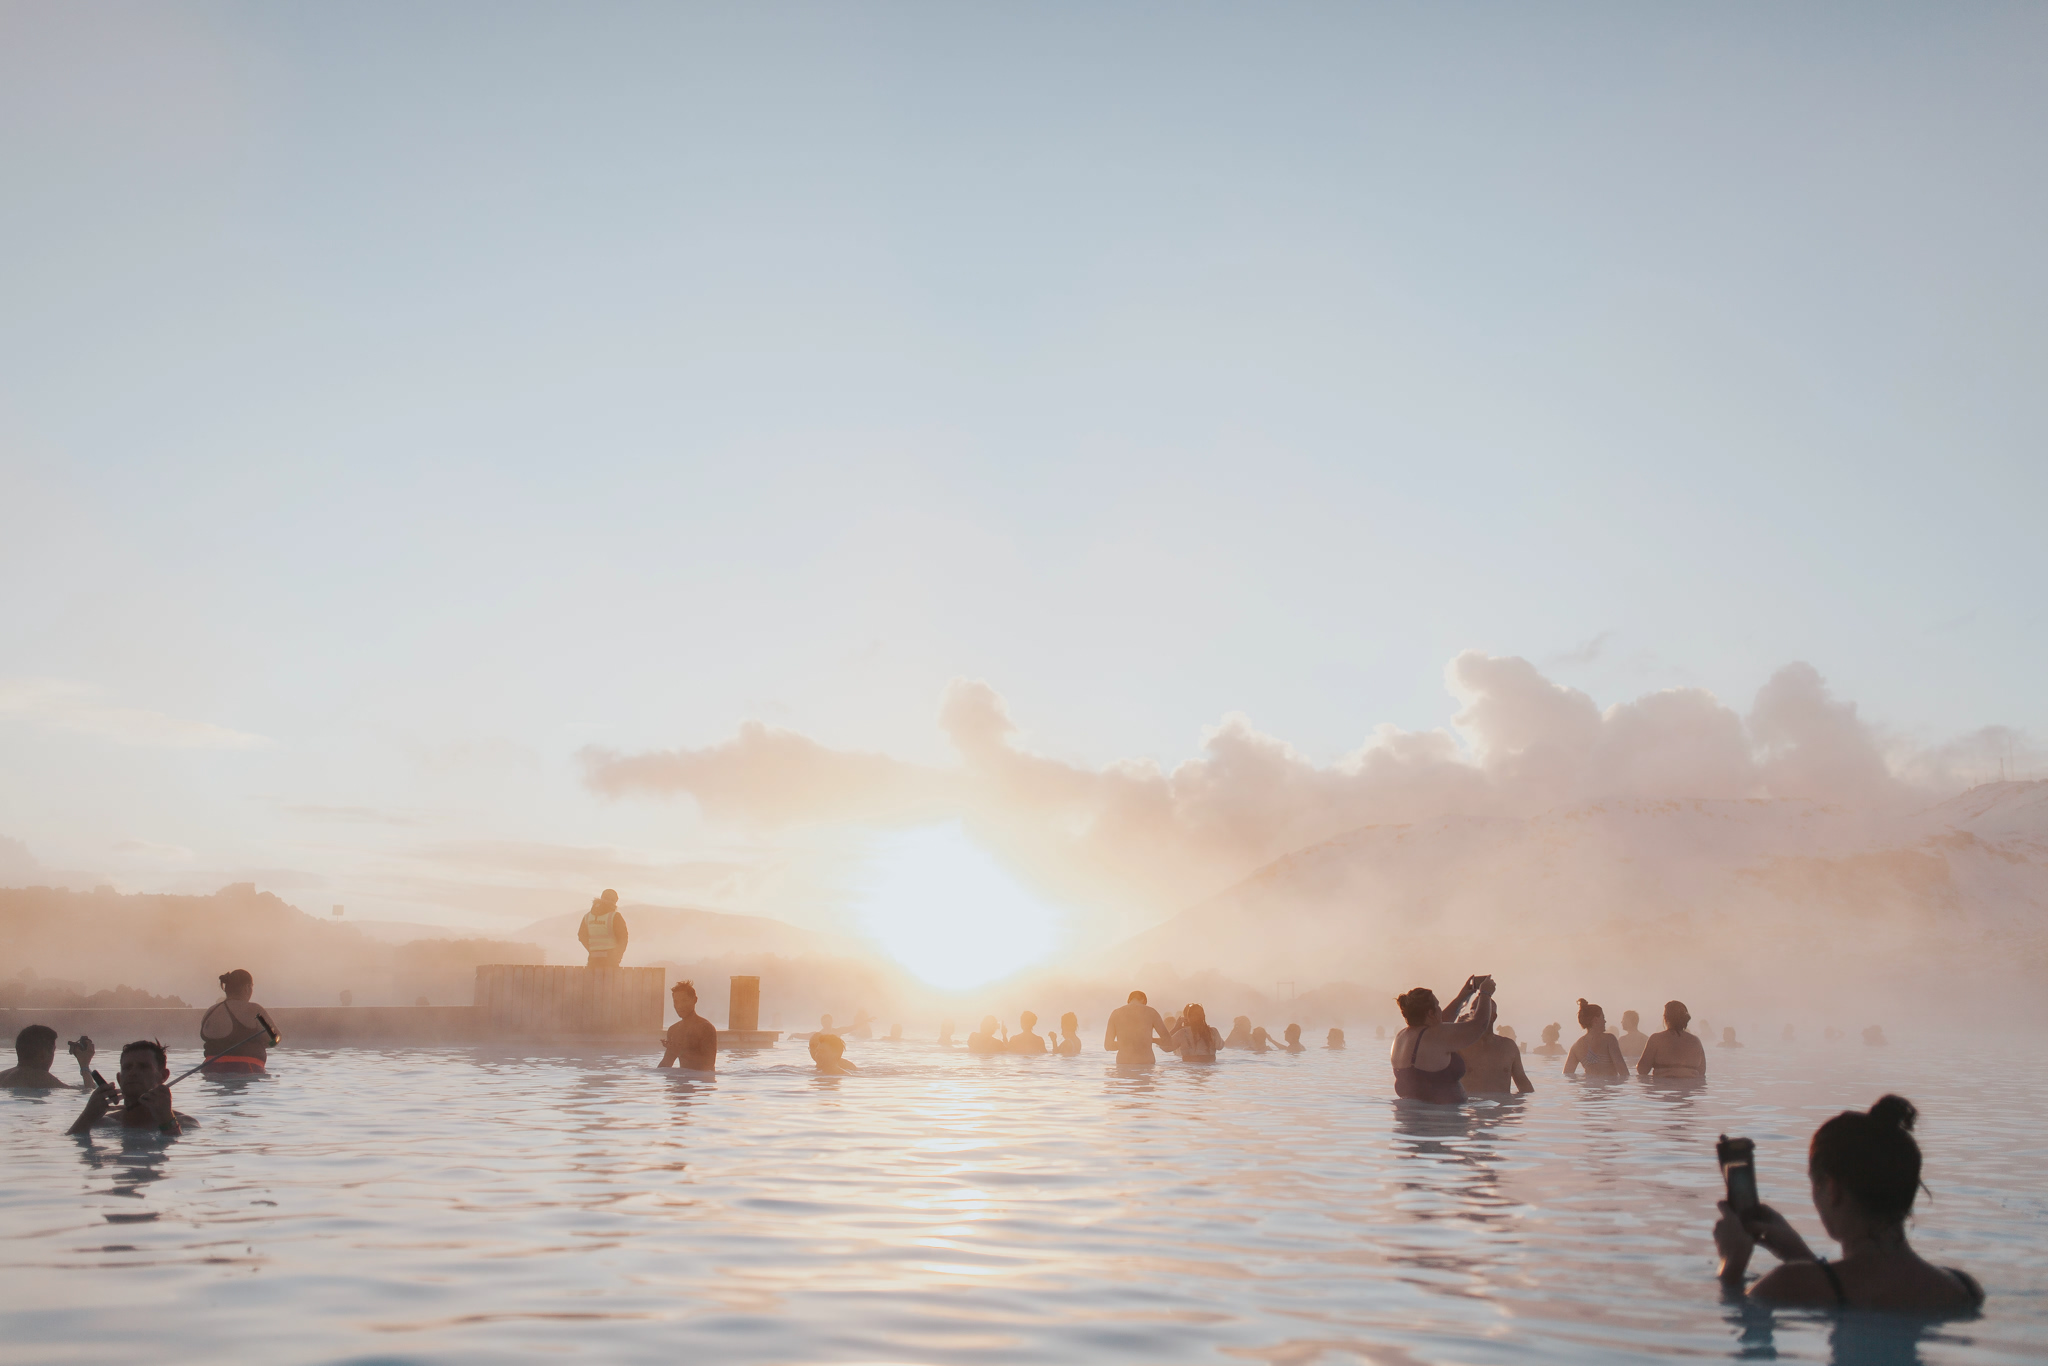 blue lagoon travel photography iceland